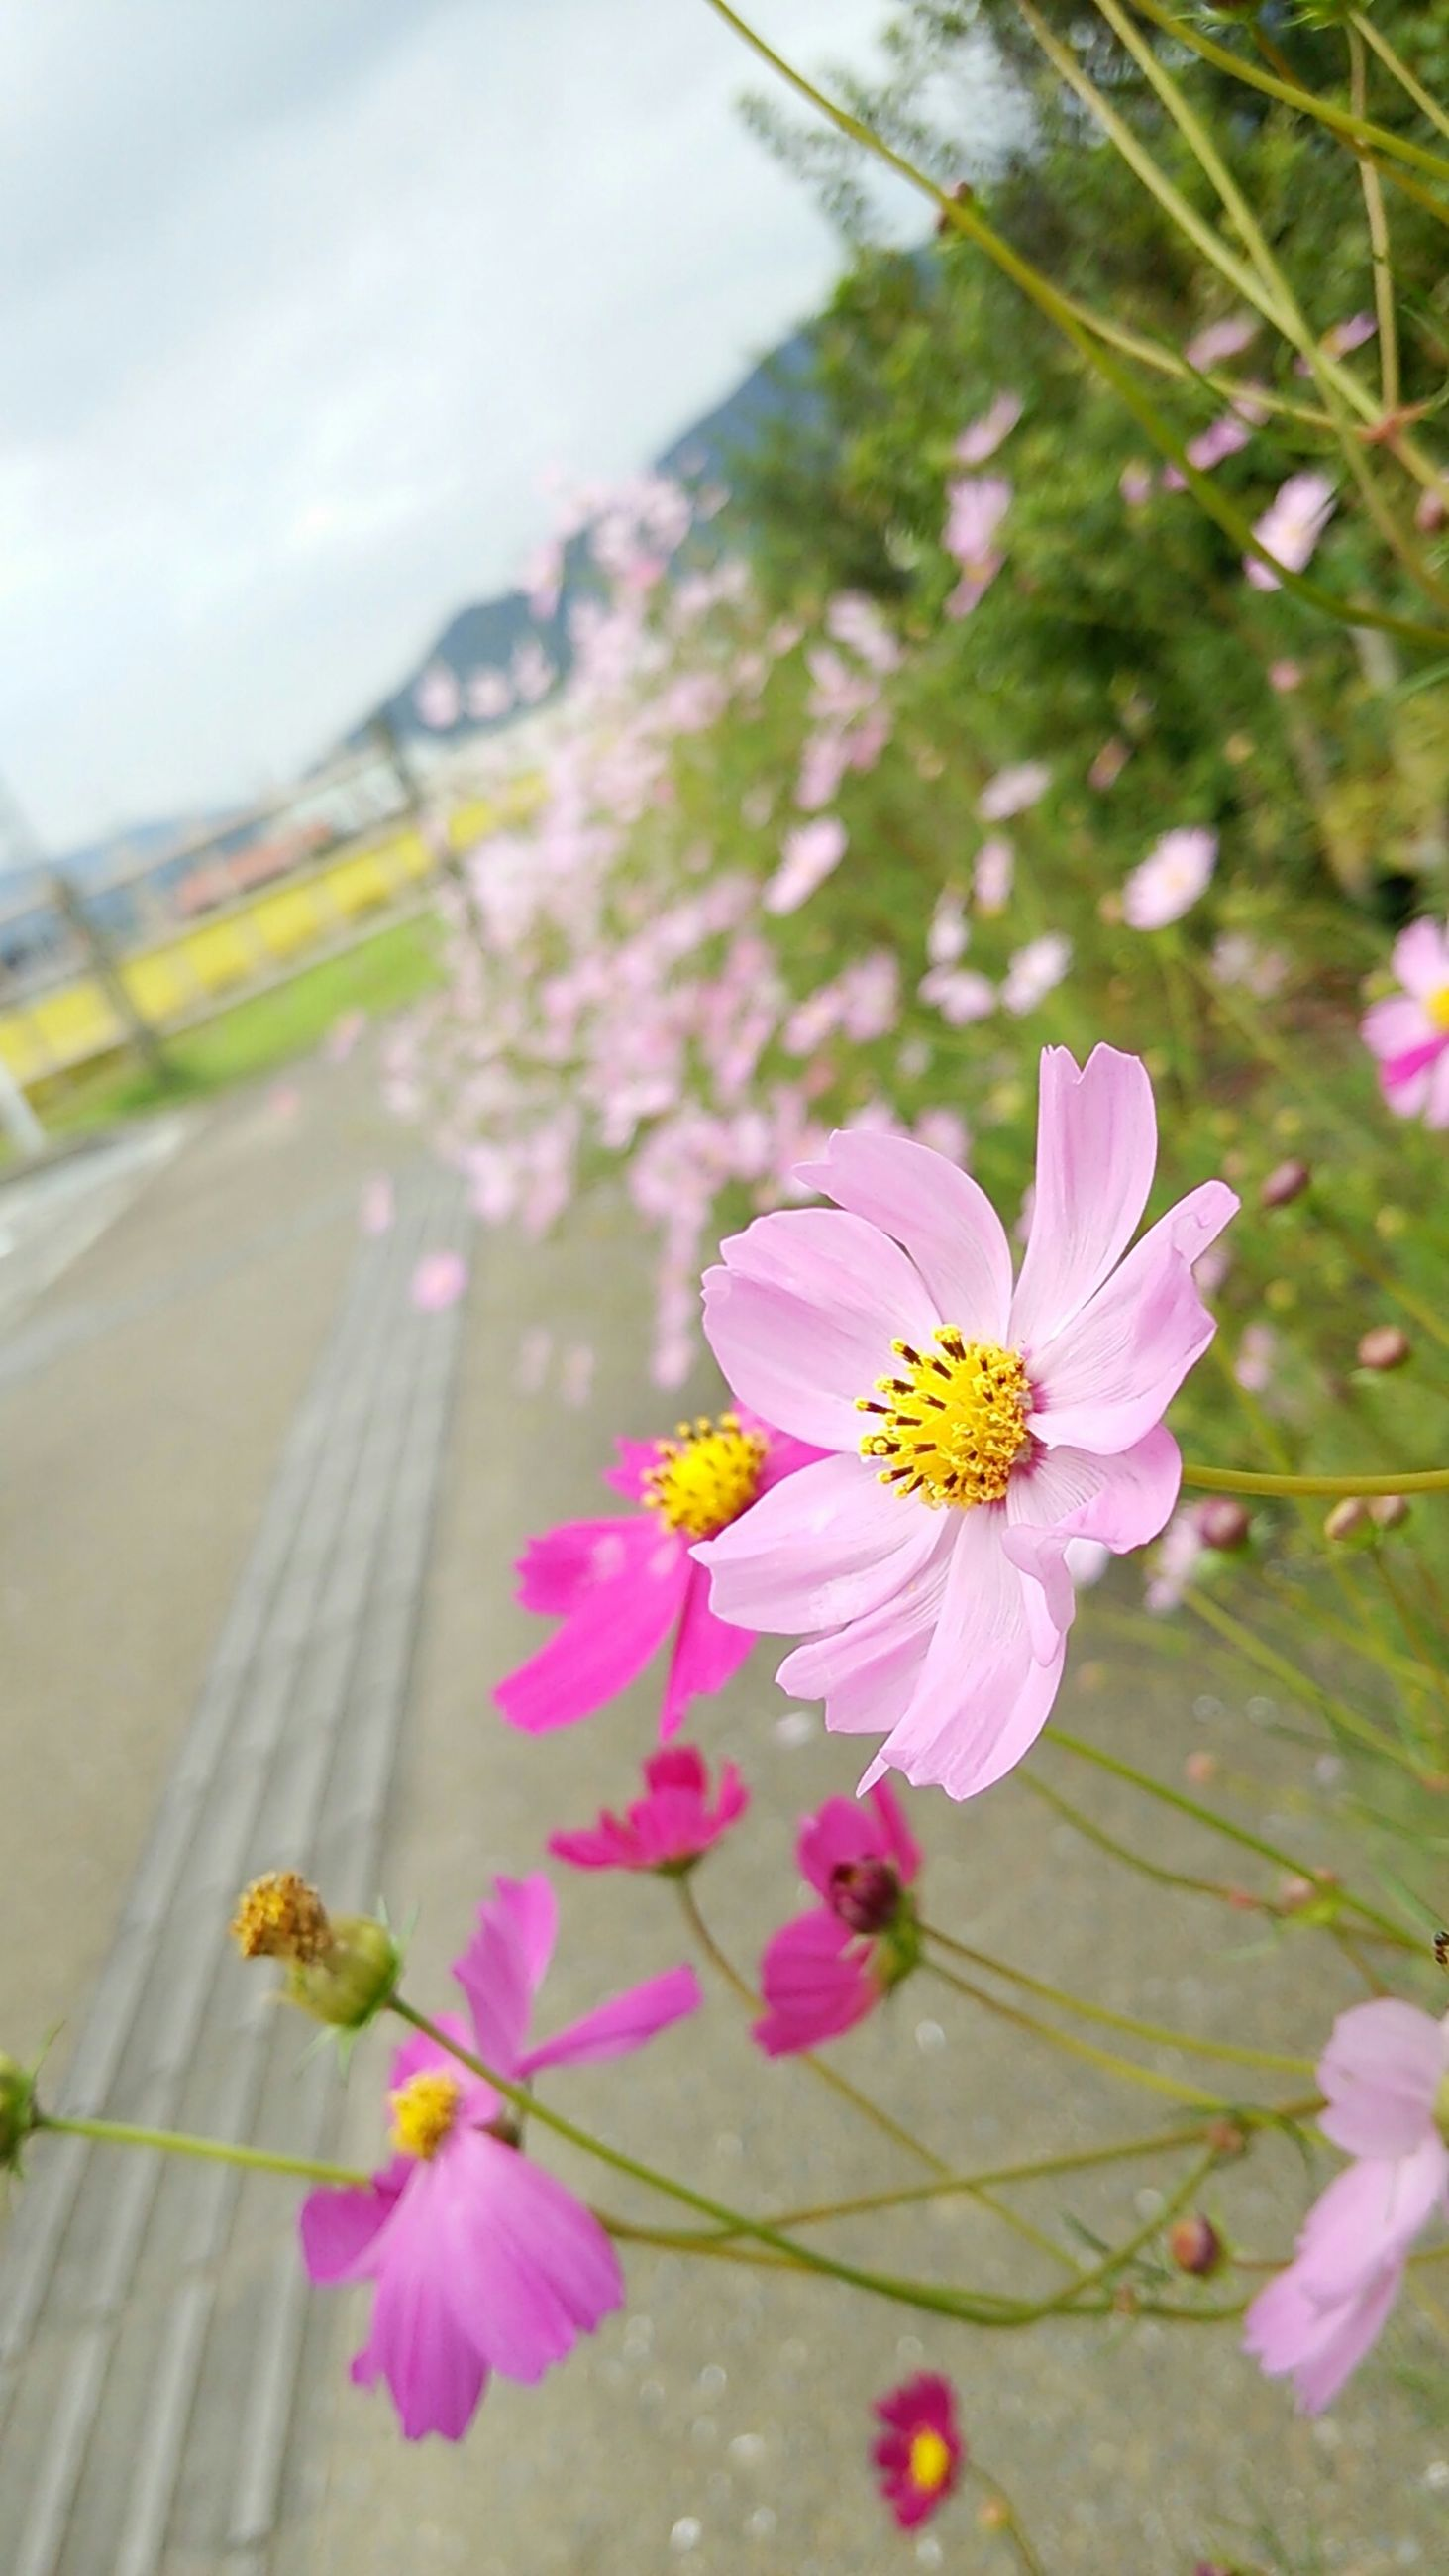 flower, freshness, petal, fragility, flower head, pink color, insect, growth, beauty in nature, one animal, animal themes, focus on foreground, pollen, nature, blooming, close-up, animals in the wild, plant, wildlife, pollination